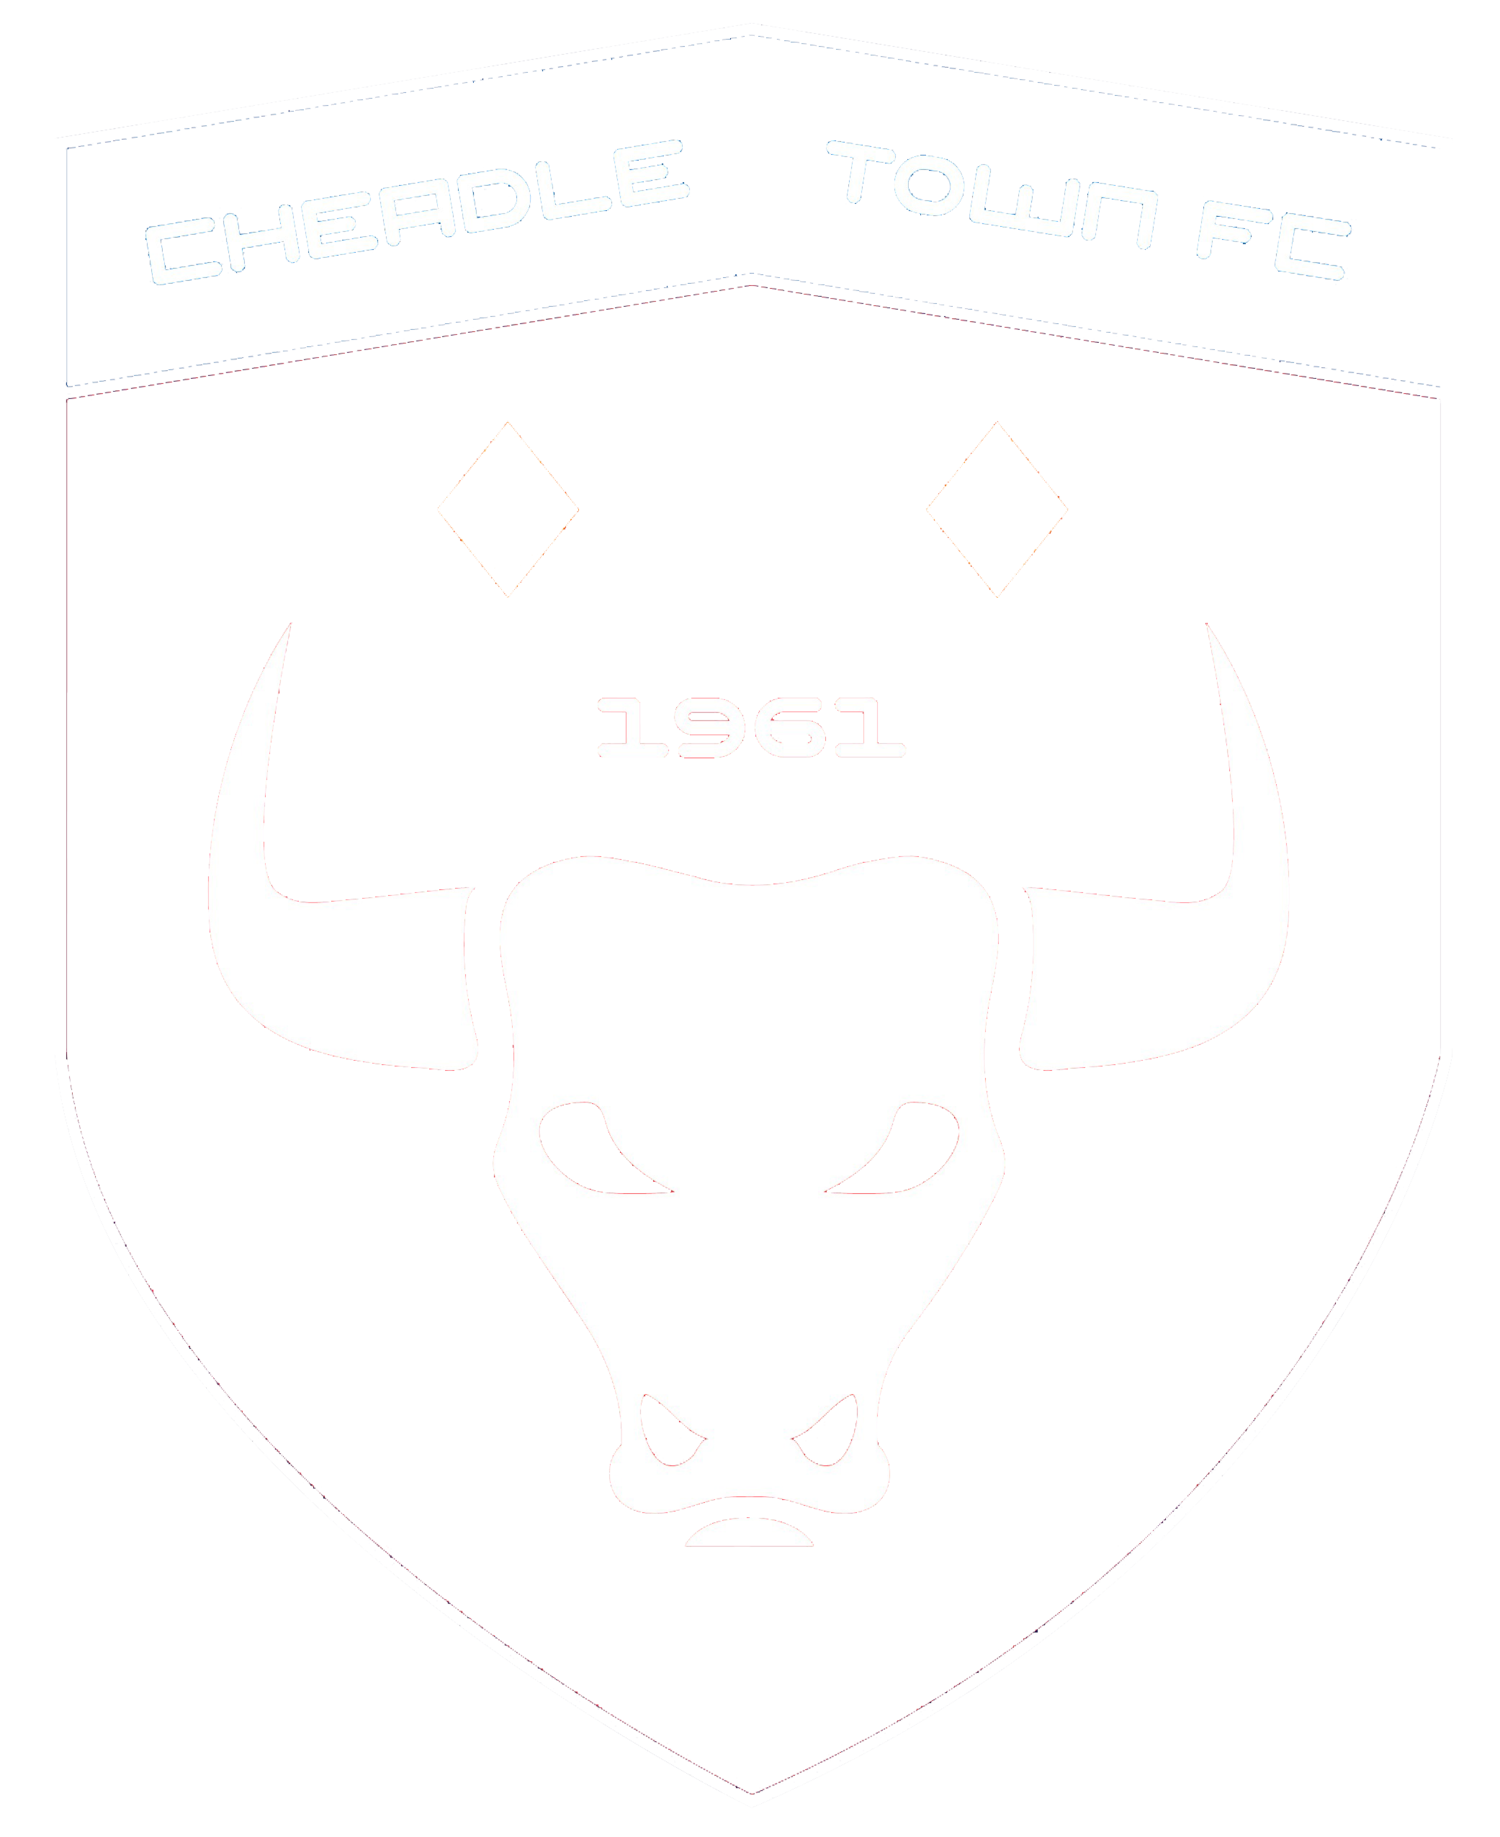 Cheadle Town Football Club